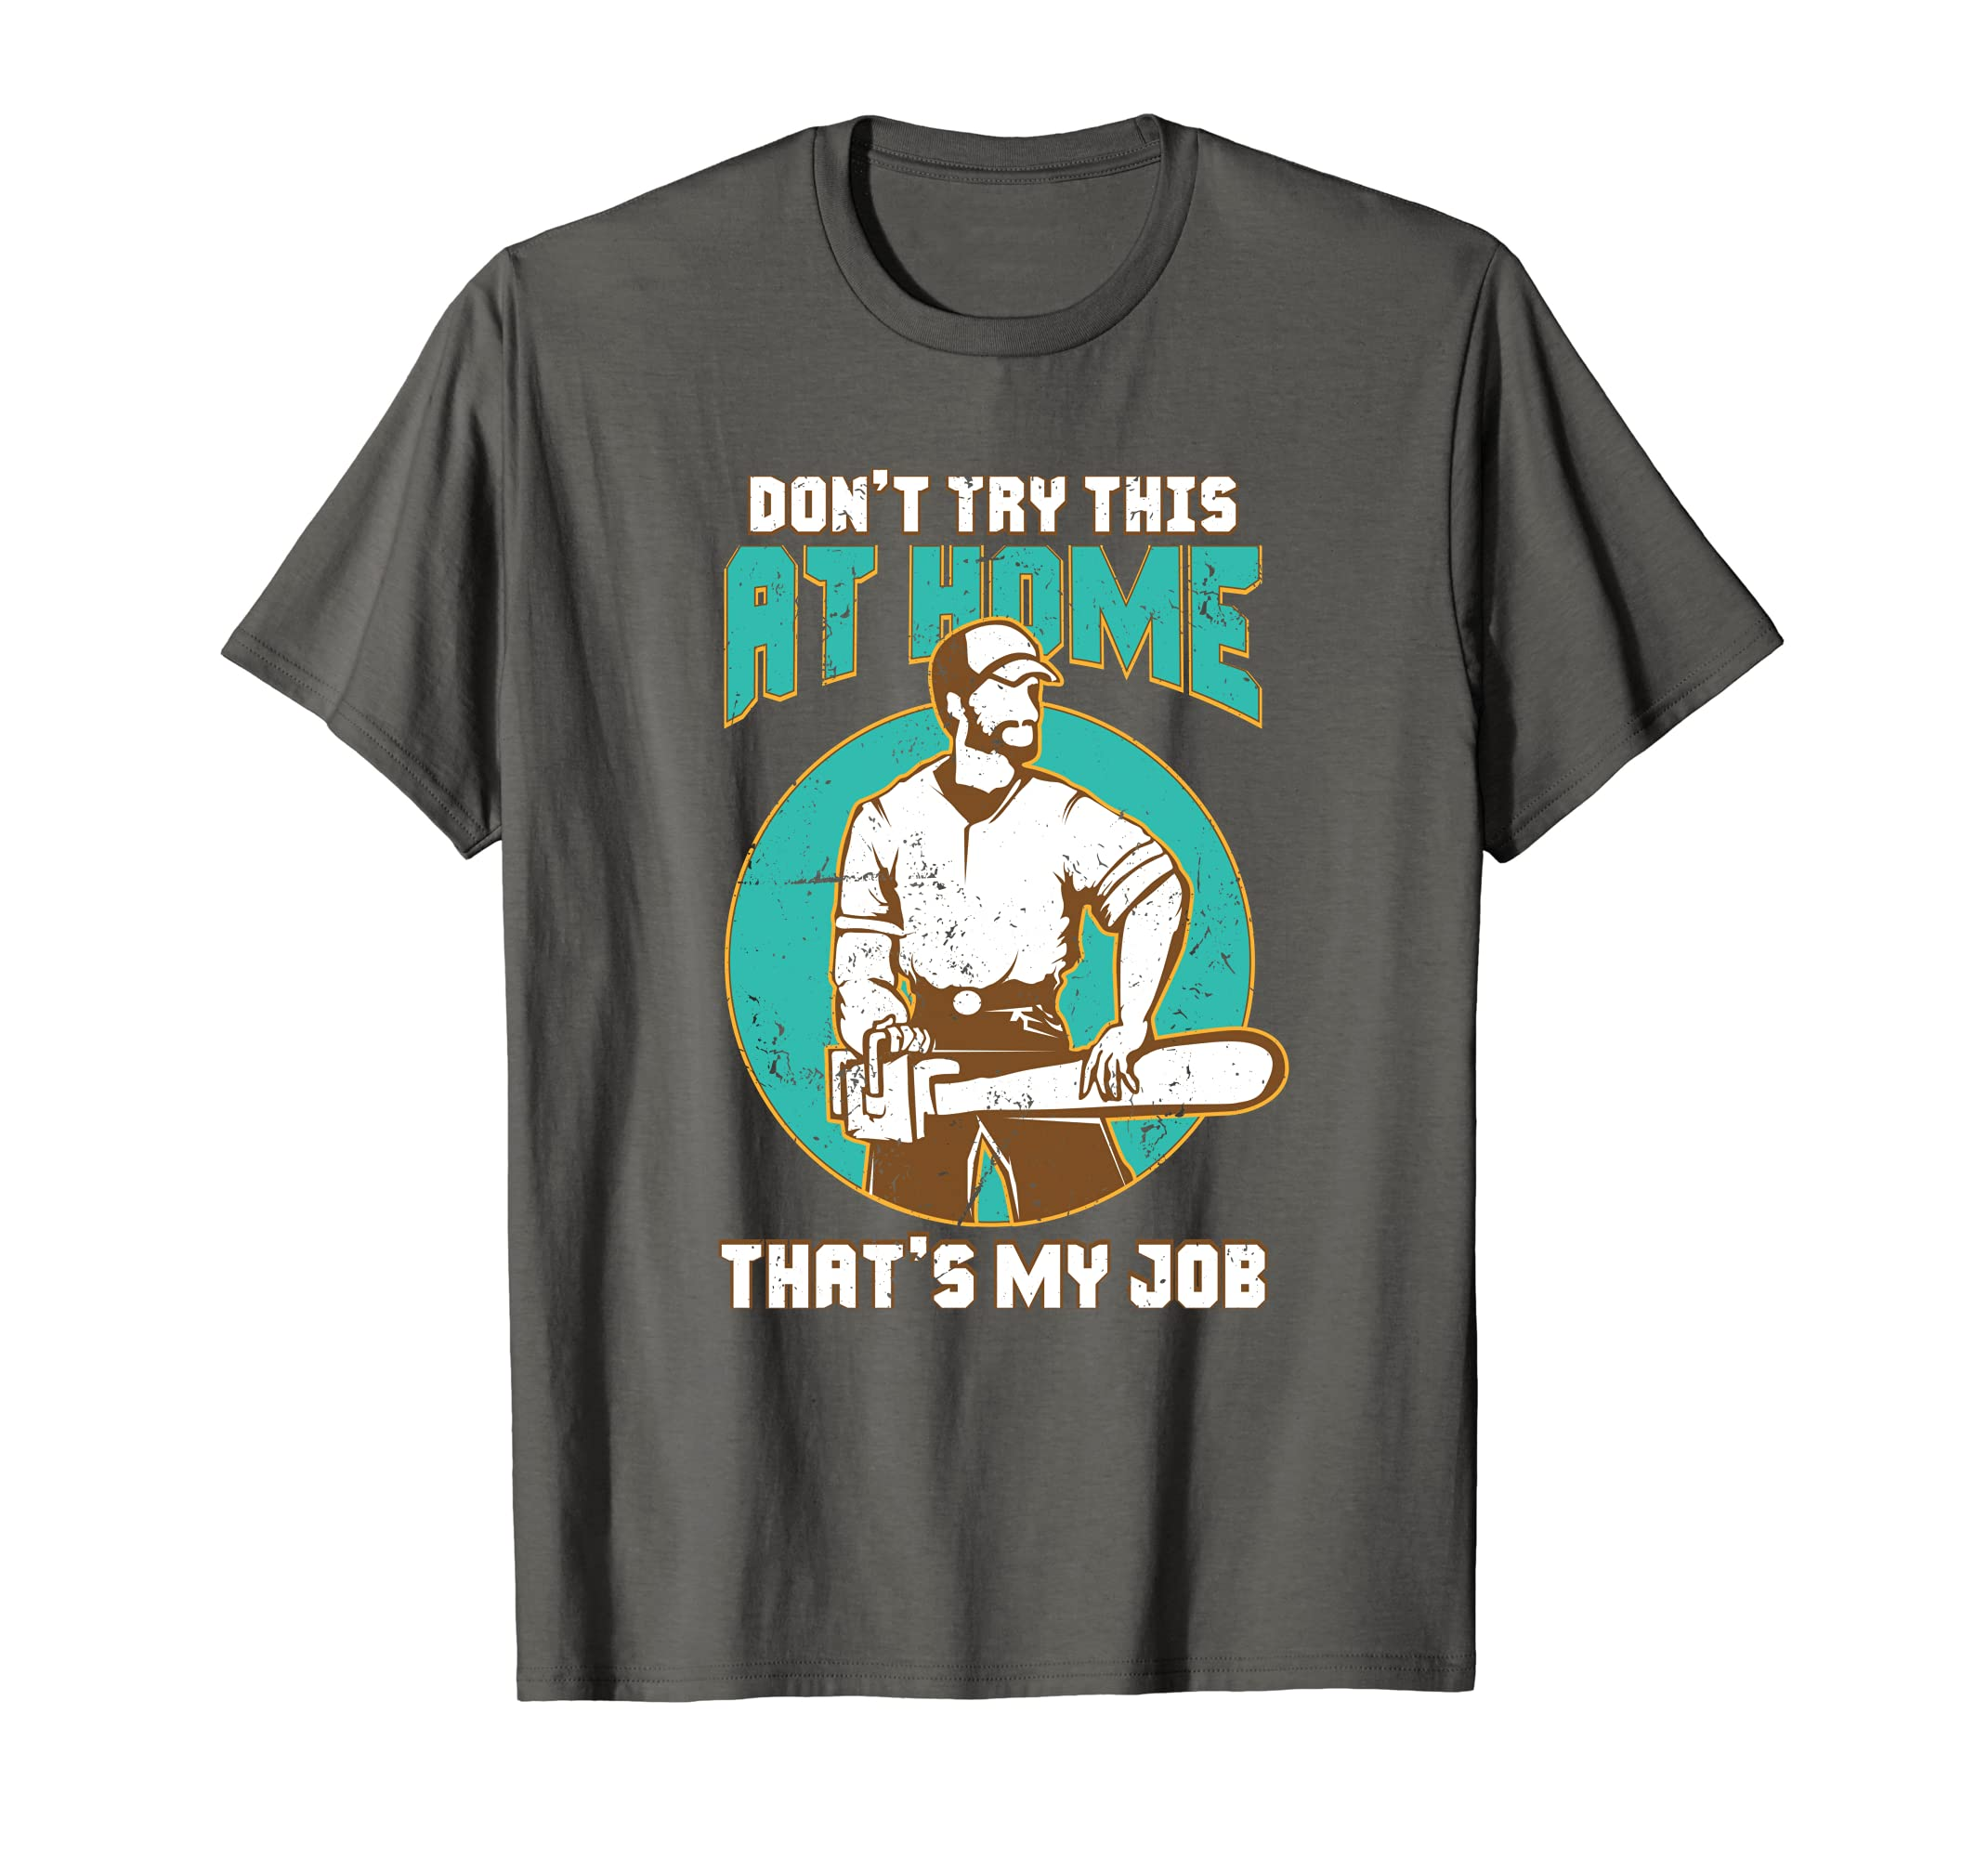 ca5918d4 Amazon.com: Funny Arborist T Shirt- Don't Try This At Home: Clothing